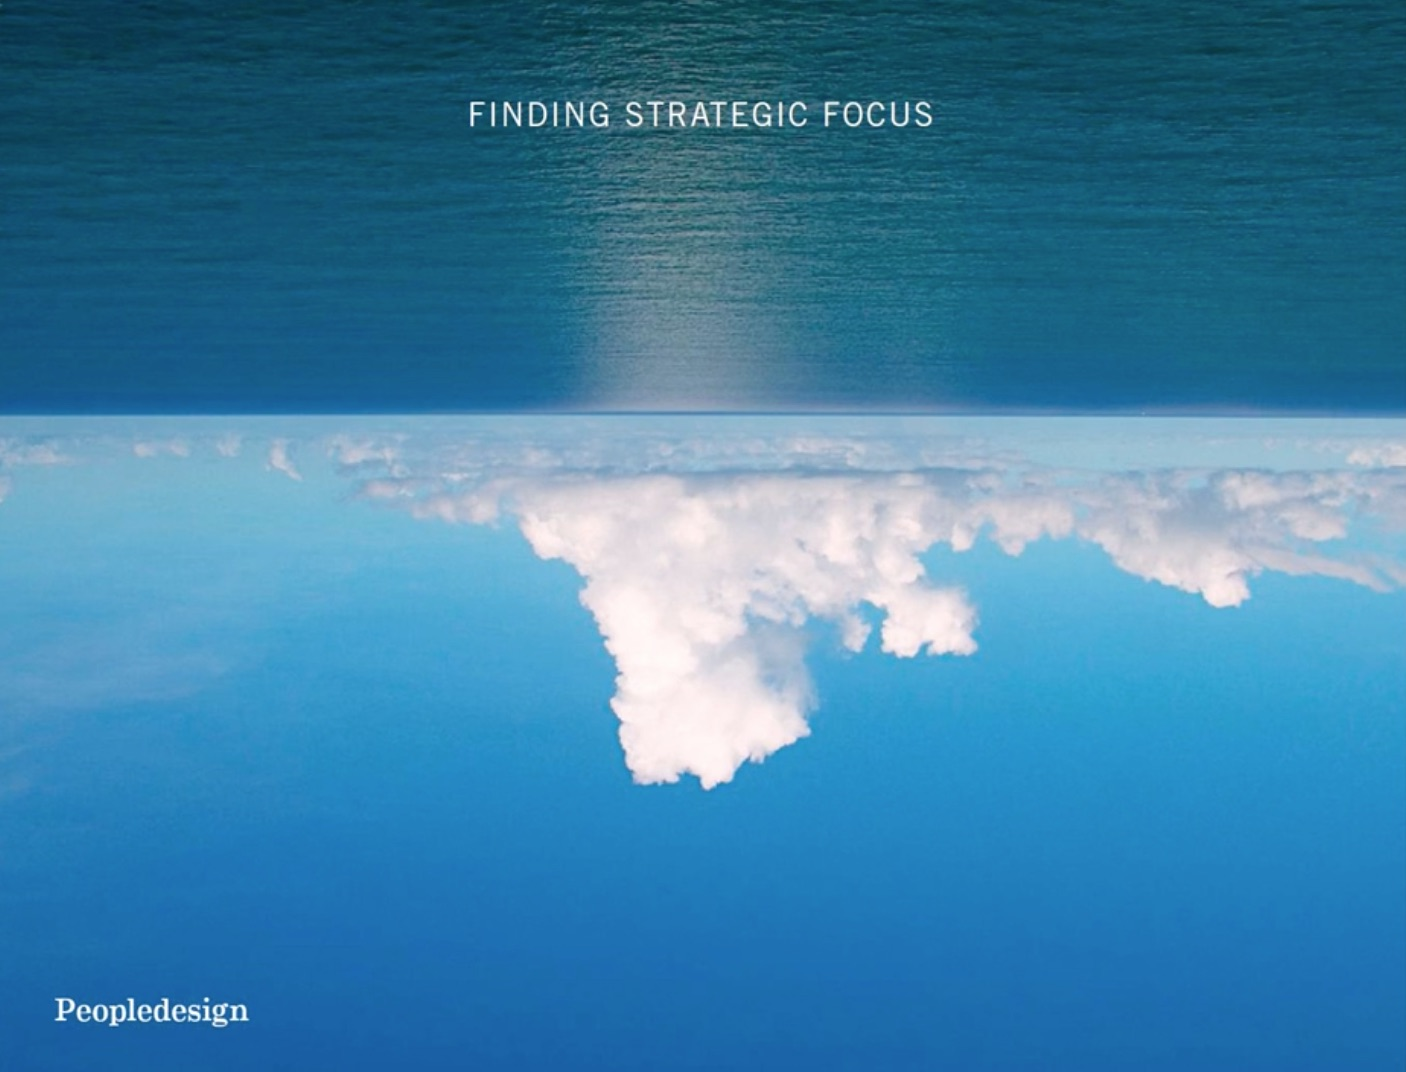 Video - Finding Strategic Focus